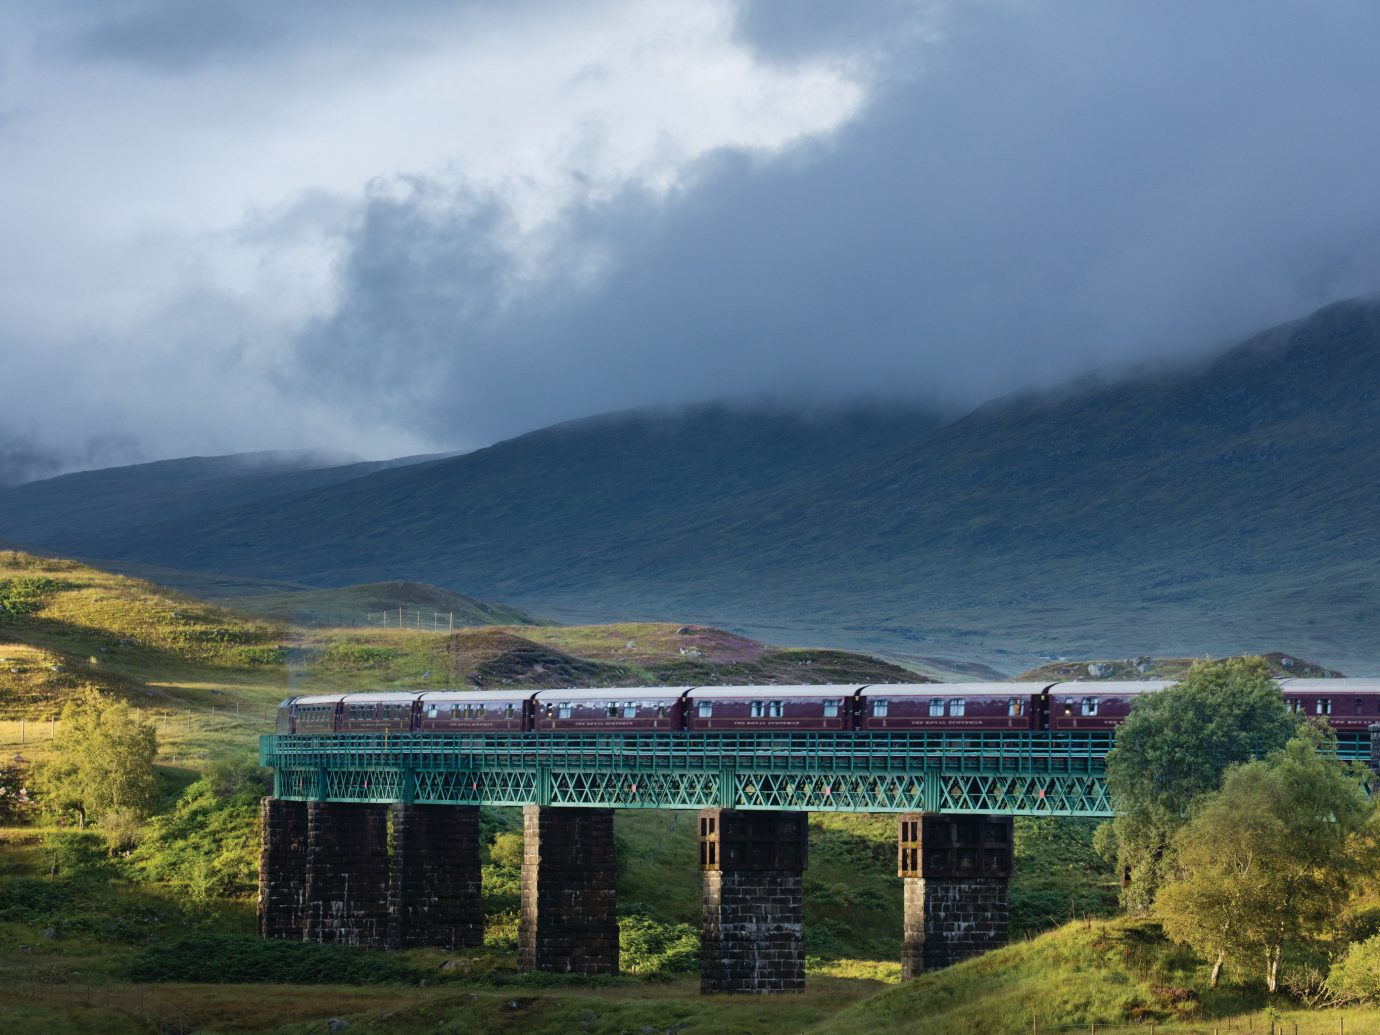 Romance Trip Ideas grass outdoor train sky highland track mountainous landforms mountain transport atmospheric phenomenon cloud hill mountain range green morning rural area landscape infrastructure traveling reservoir bridge valley highway engine lush